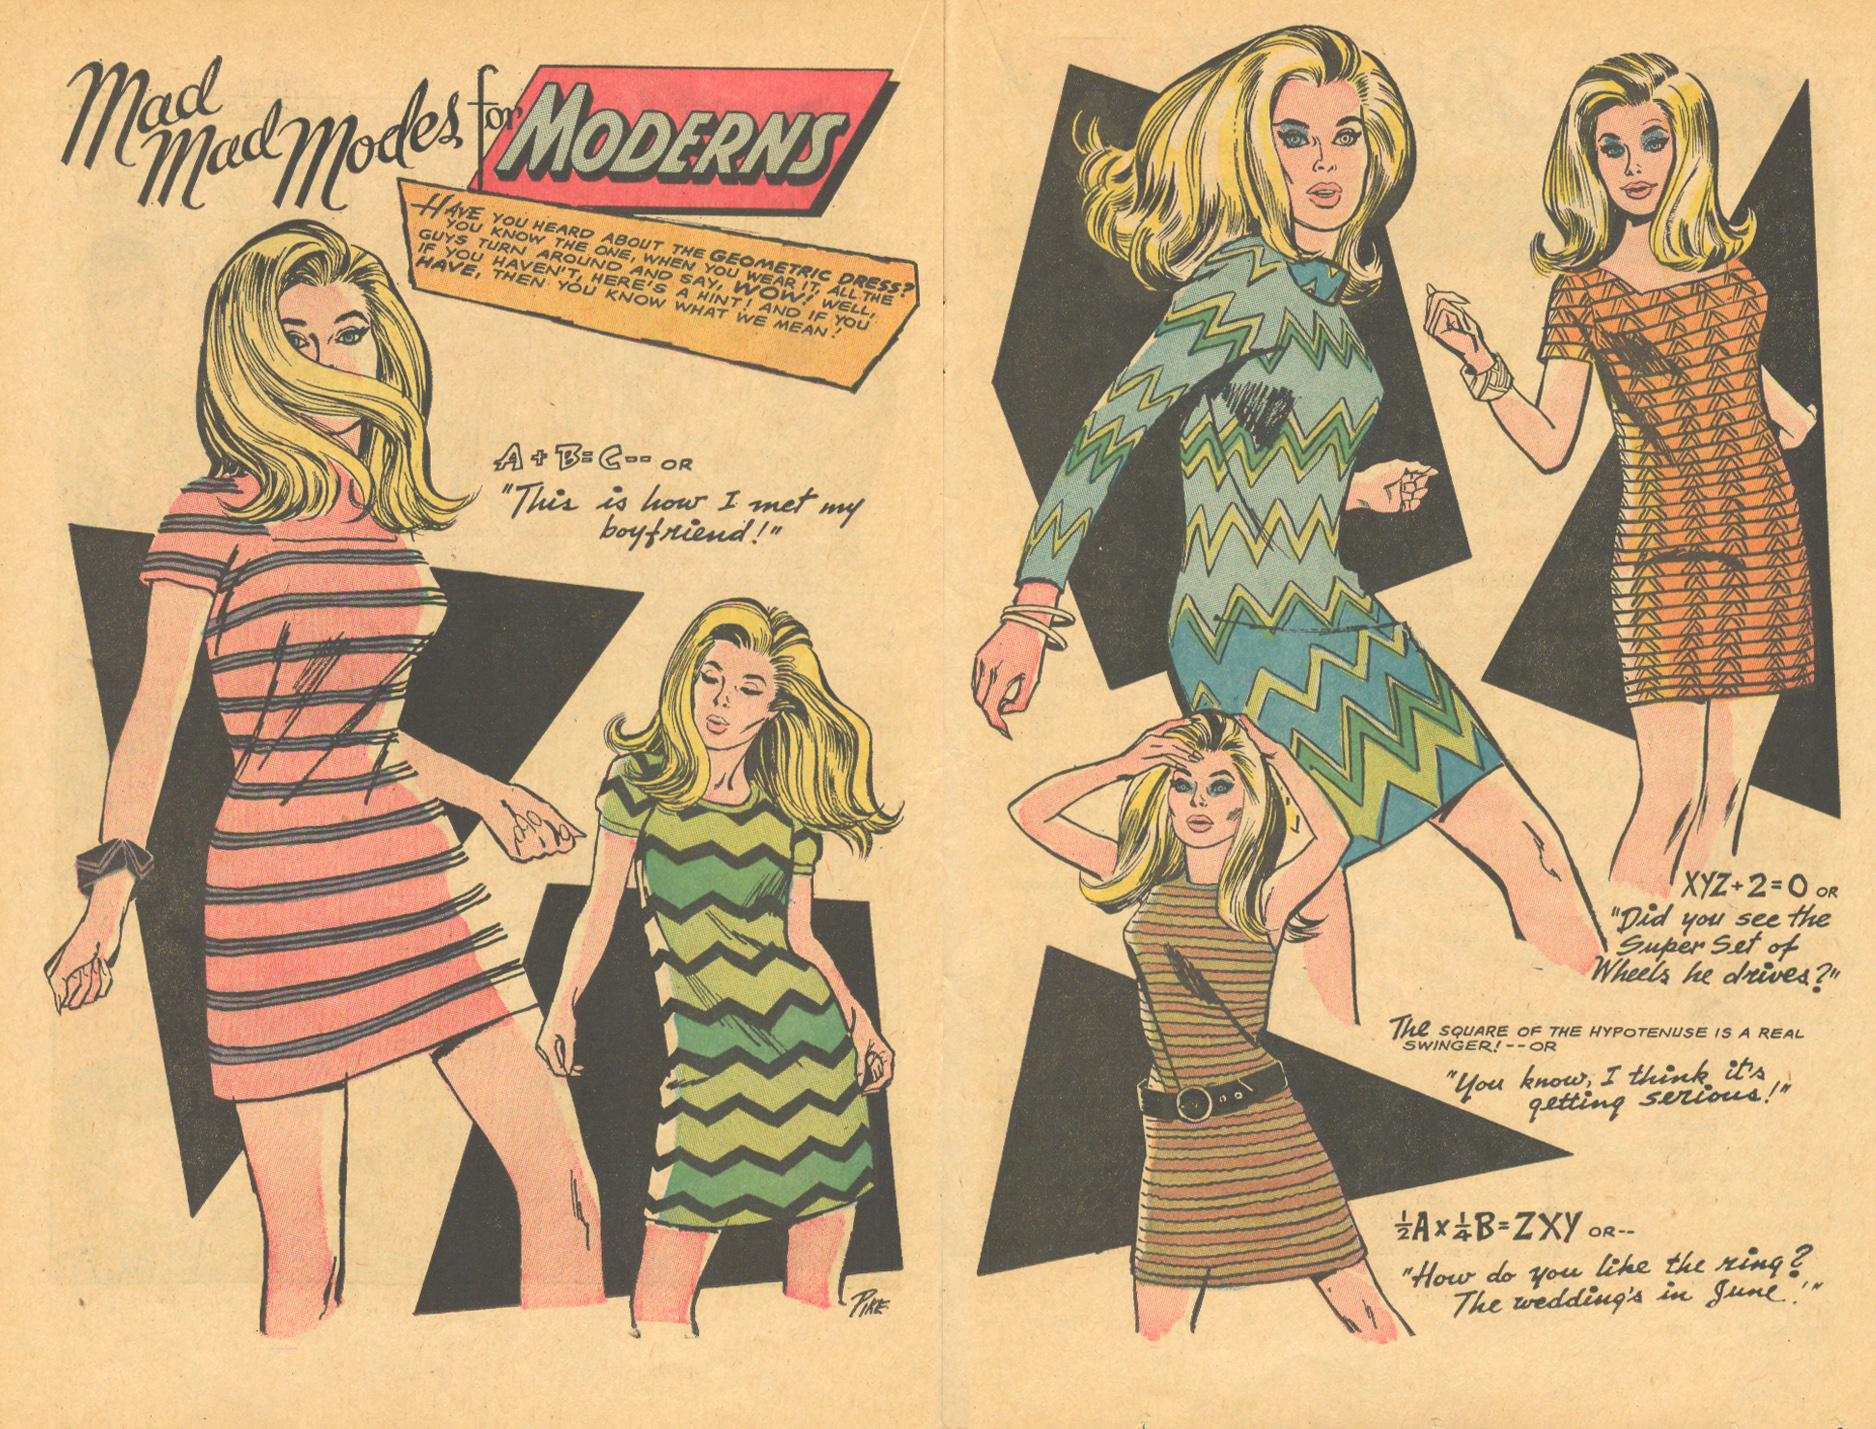 """Mad Mad Modes for Moderns""  Girls' Love Stories  #132 (January 1968) Illustrated by Jay Scott Pike"